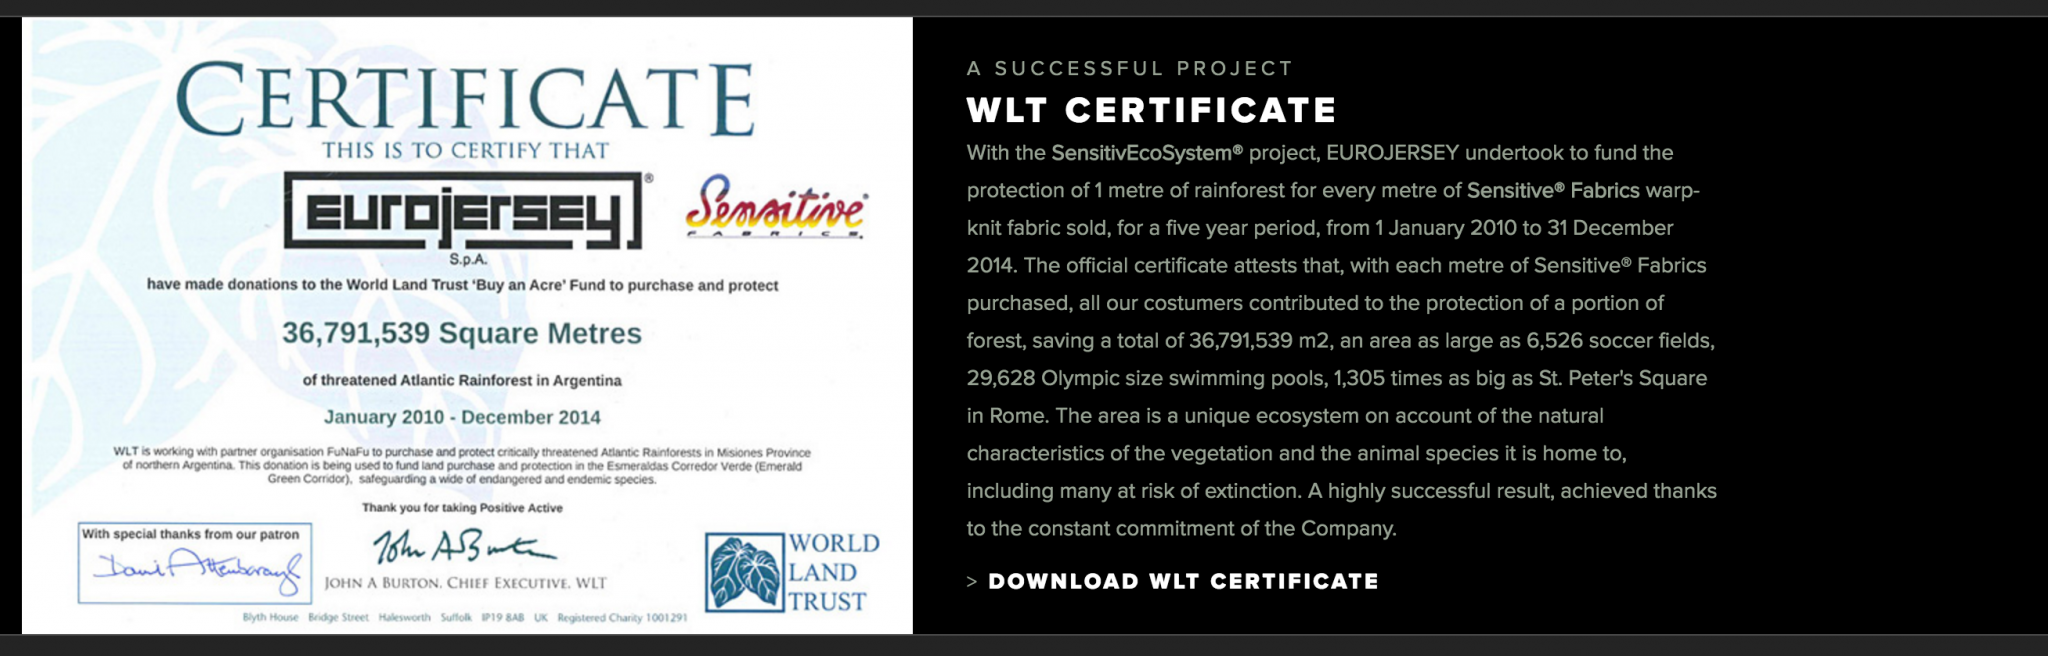 Eurojersey World Land Trust Certificate